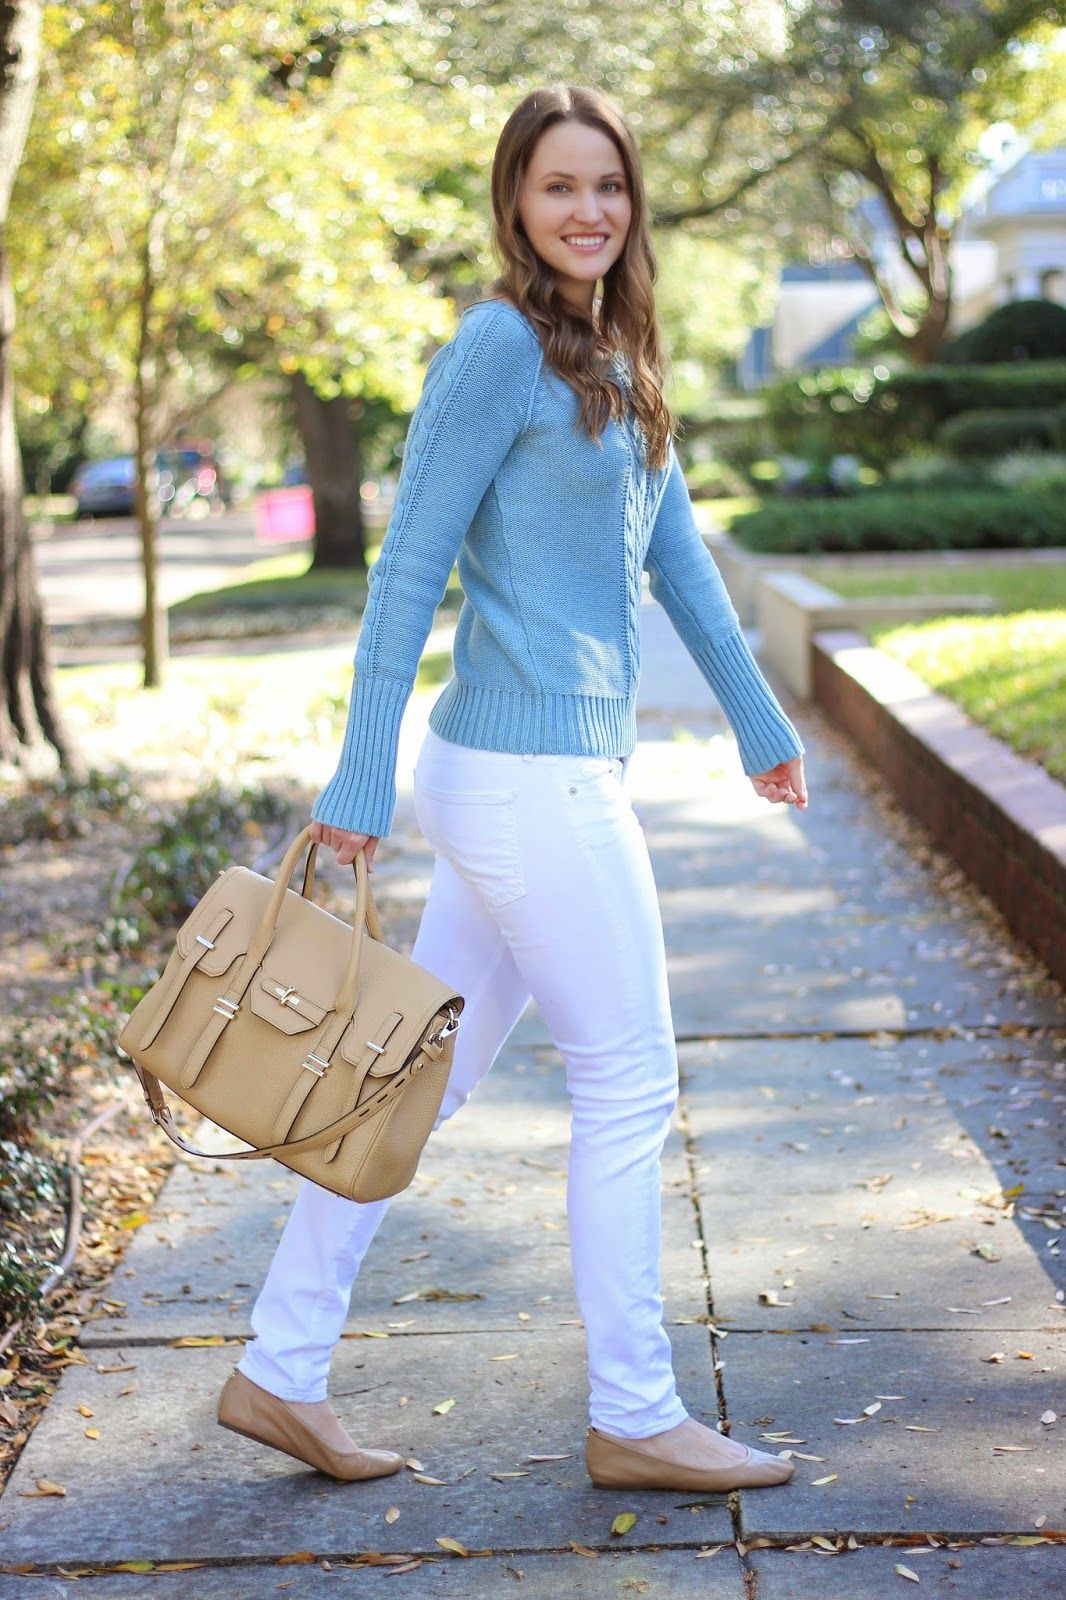 Kelly Elizabeth Style: Blue Sweater - blue chunky cable knit sweater: American Eagle; white jeans: Citizens of Humanity; bag: Jules Satchel in Biscuit by Rebecca Minkoff; nude ballet flats: Sam Edelman; lip gloss: Blushing Bride by Tarte